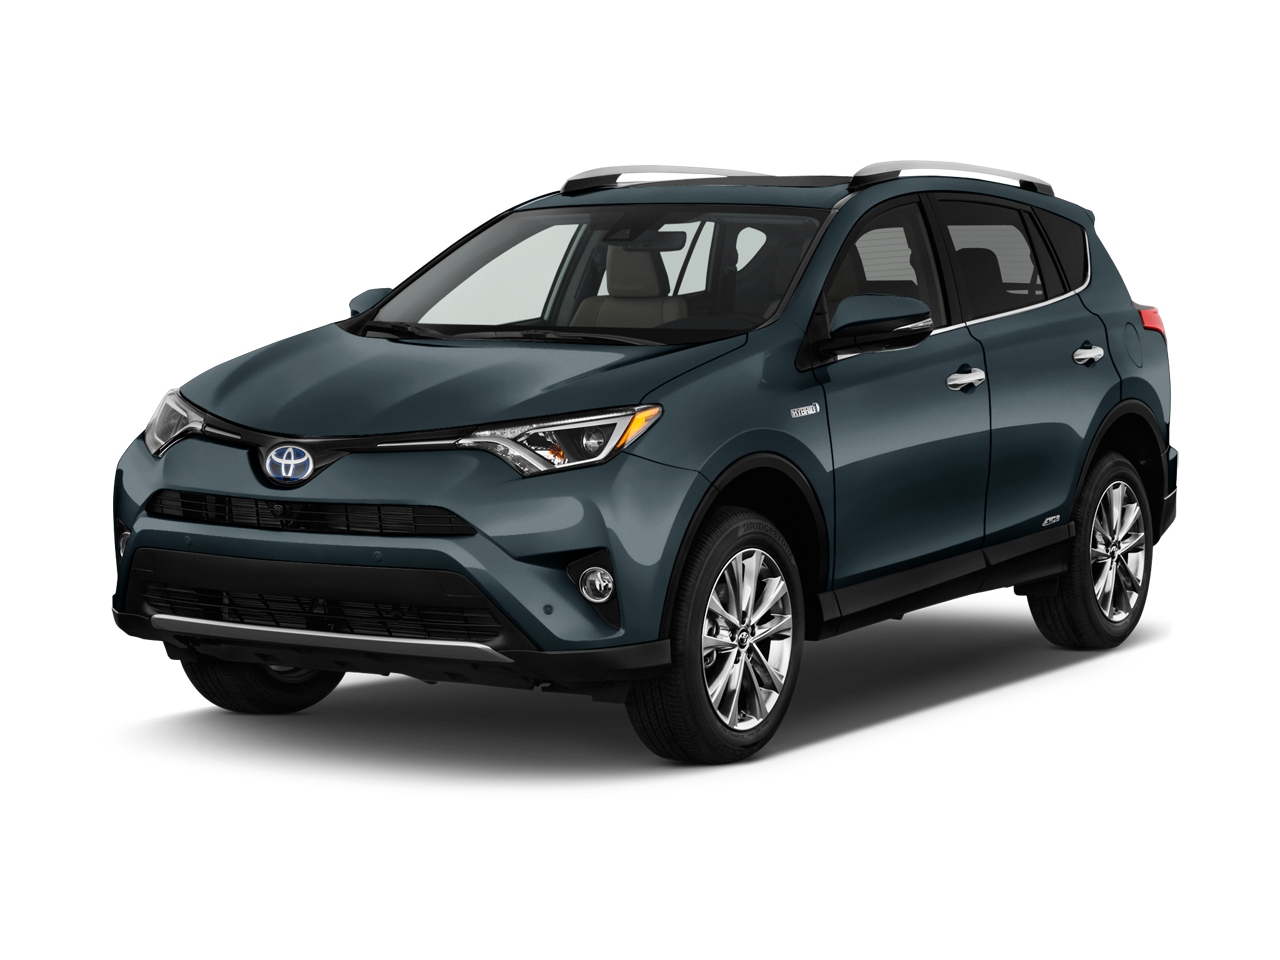 new 2017 toyota rav4 platinum near morristown nj toyota of morristown. Black Bedroom Furniture Sets. Home Design Ideas